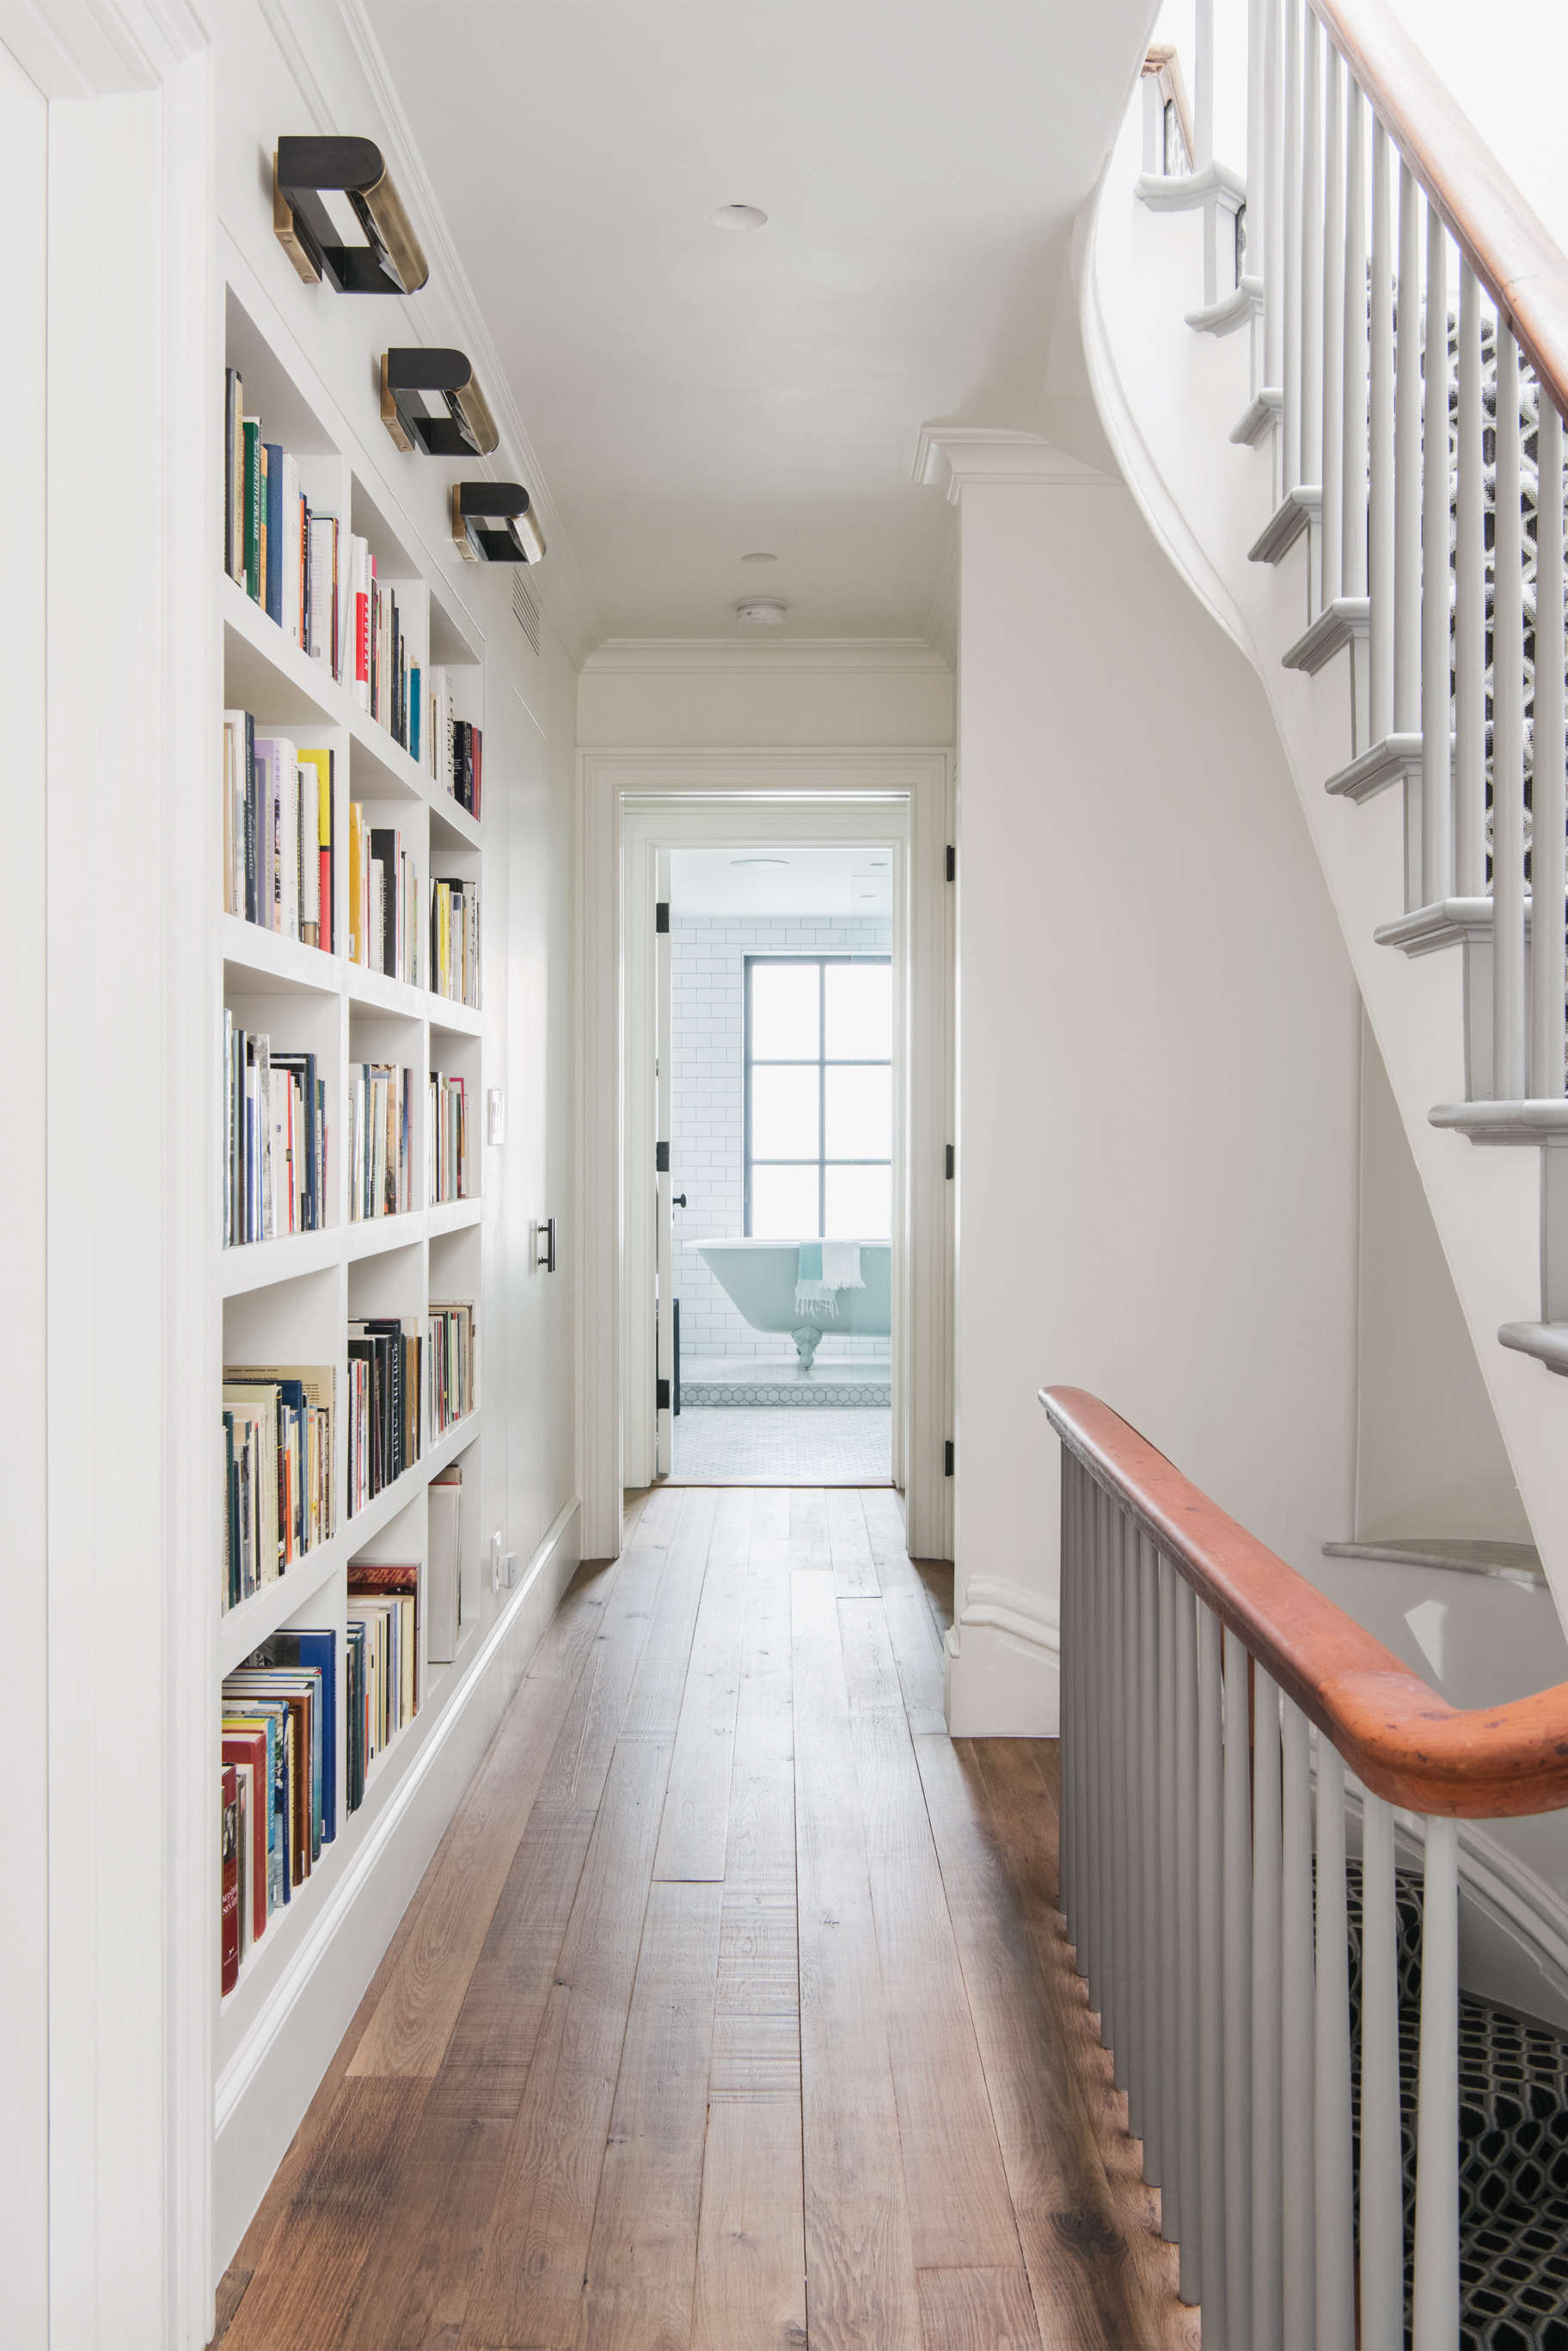 Brownstone Interior Design Ideas Small Kitchen: An Unfussy Brooklyn Townhouse Remodel From Architect